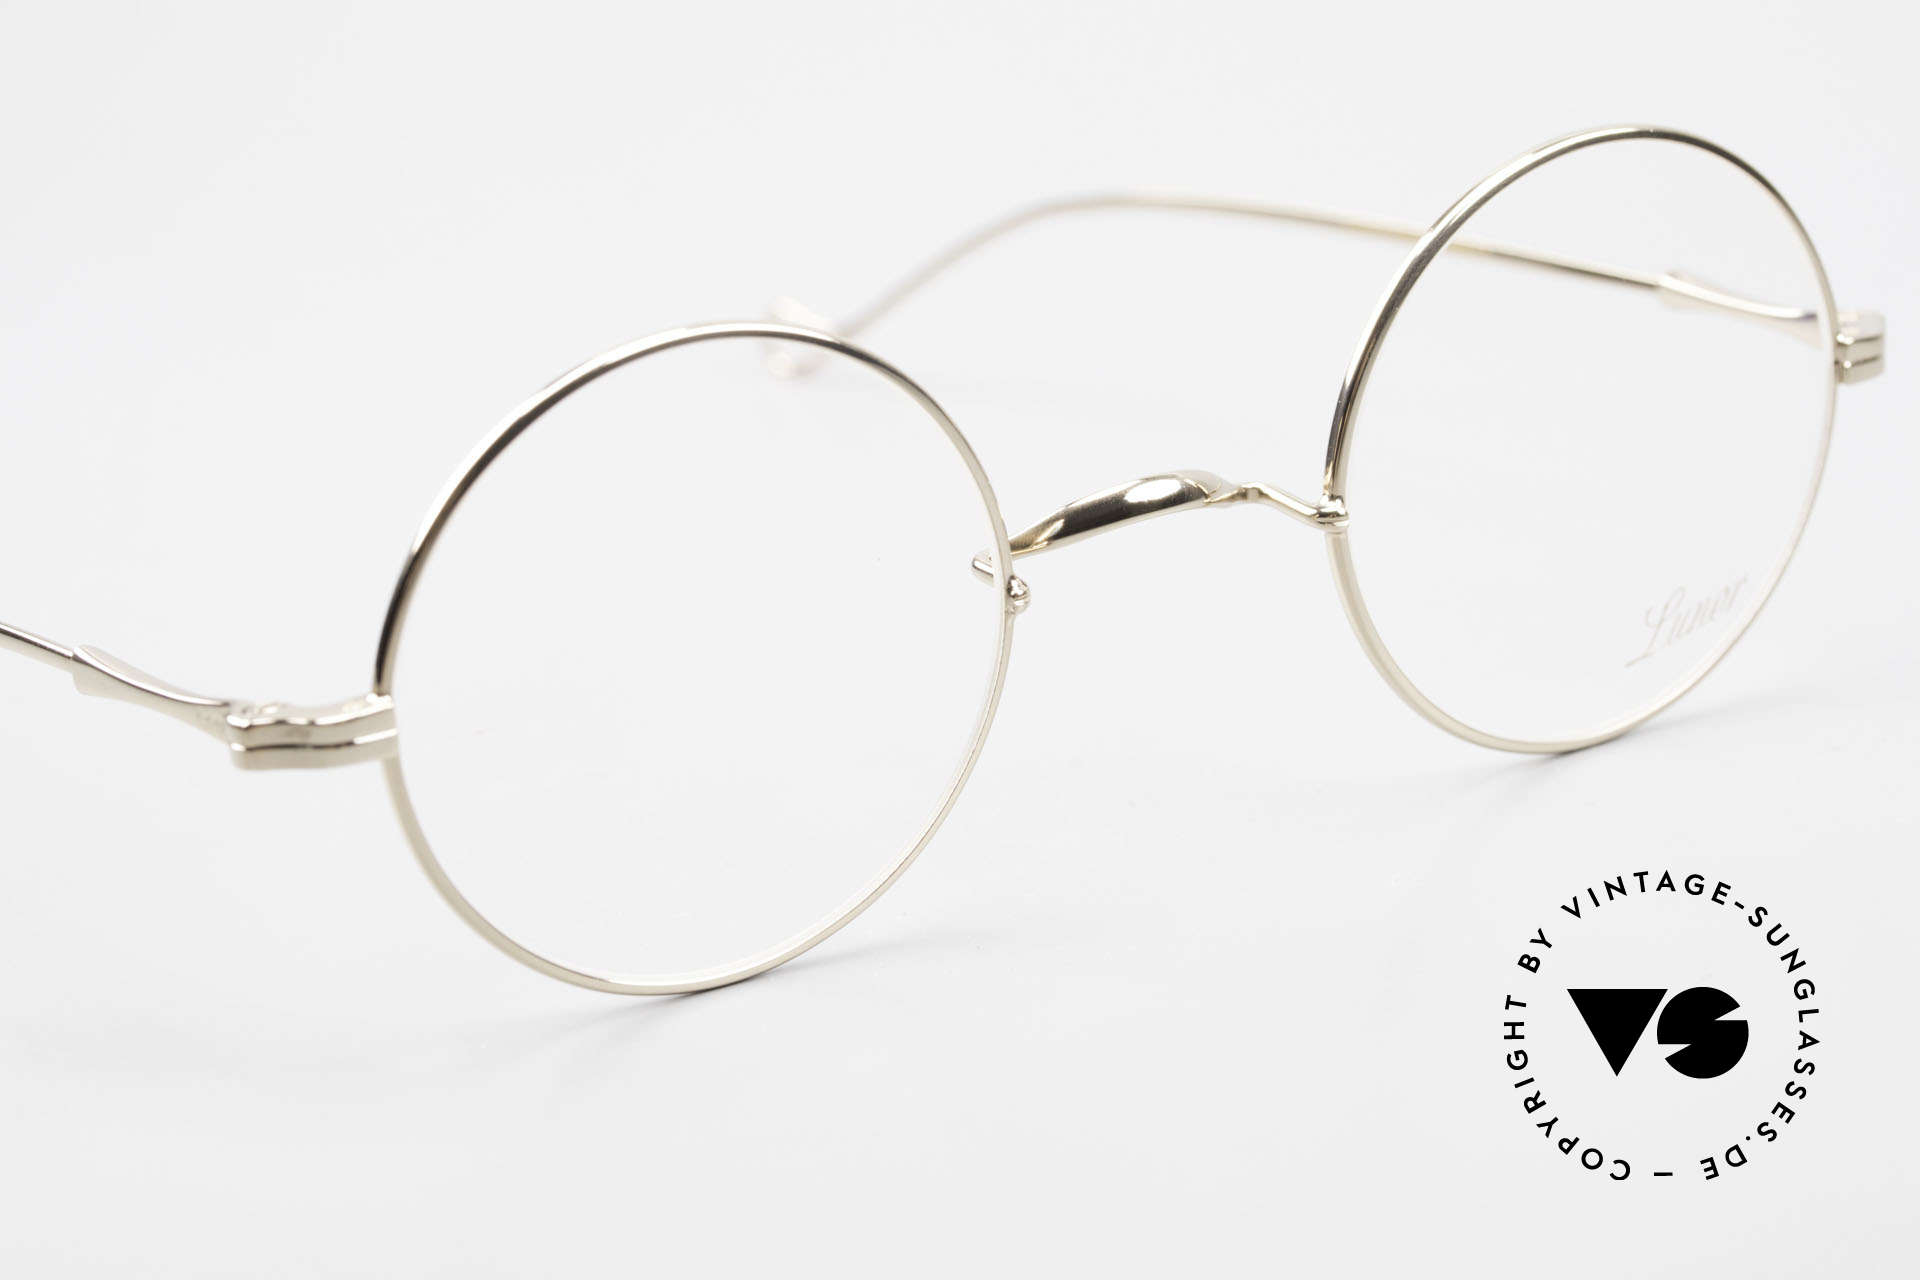 Lunor II 23 Round Glasses Special Edition, a timeless, unworn RARITY for all lovers of quality, Made for Men and Women